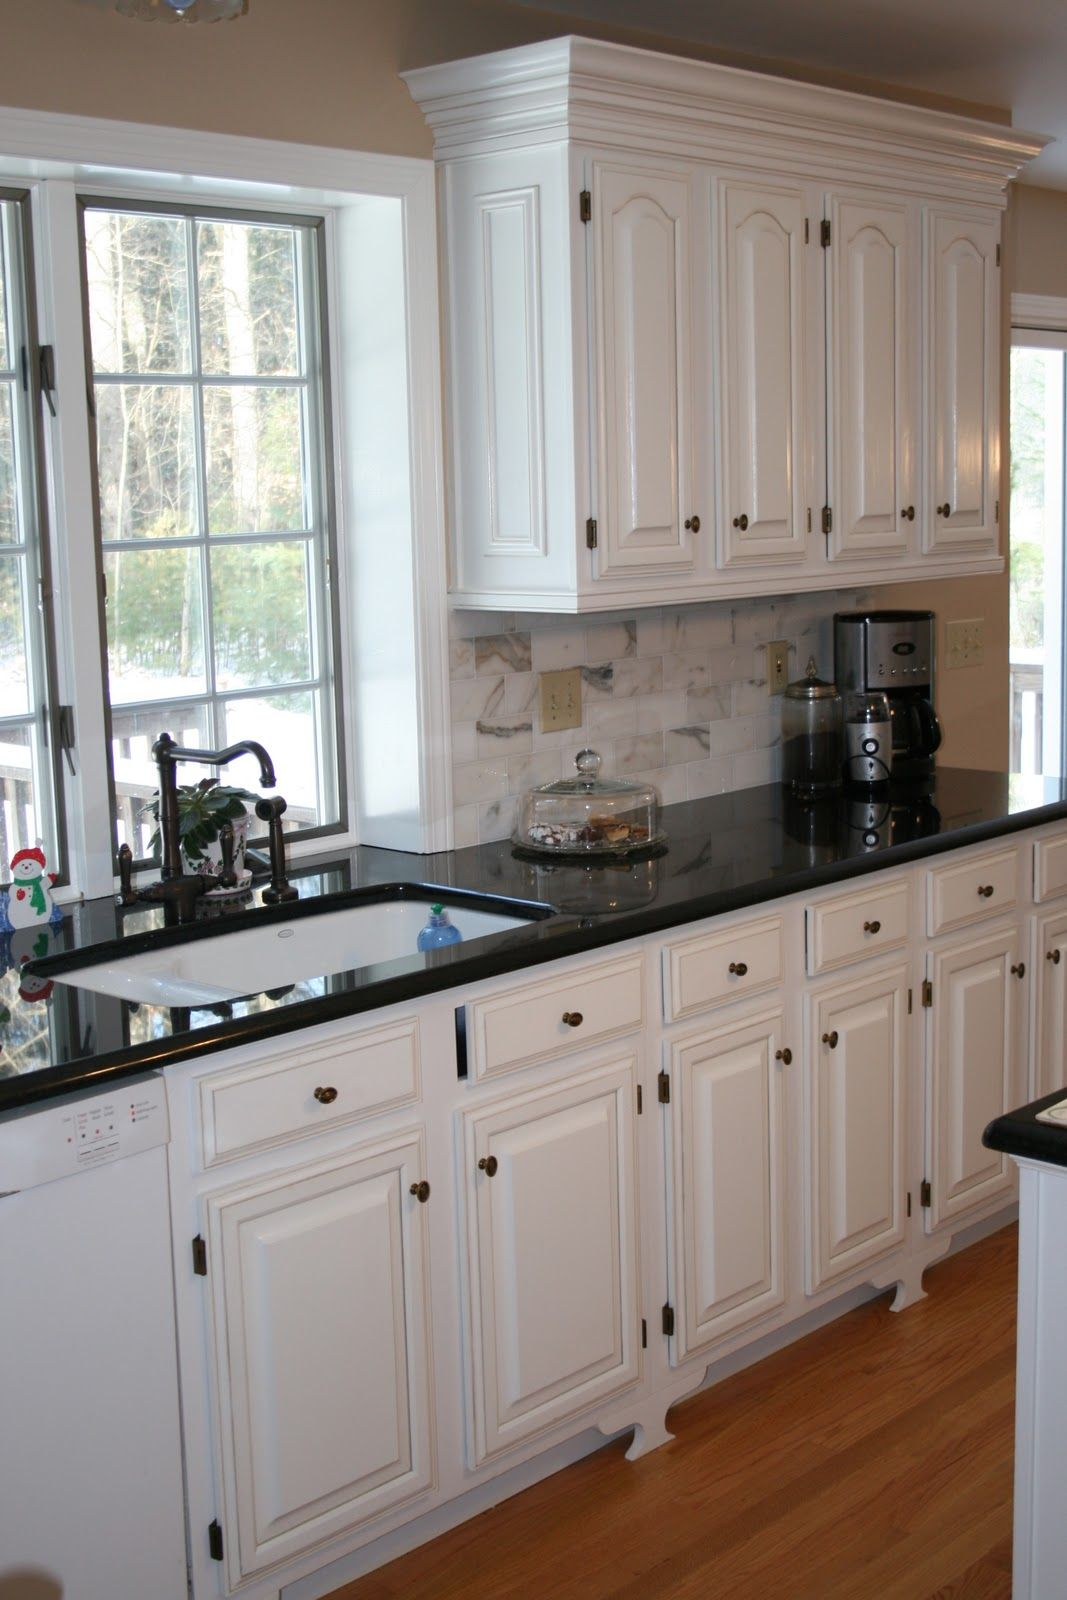 newwood cupboards white cabinets black countertops and that faucet home